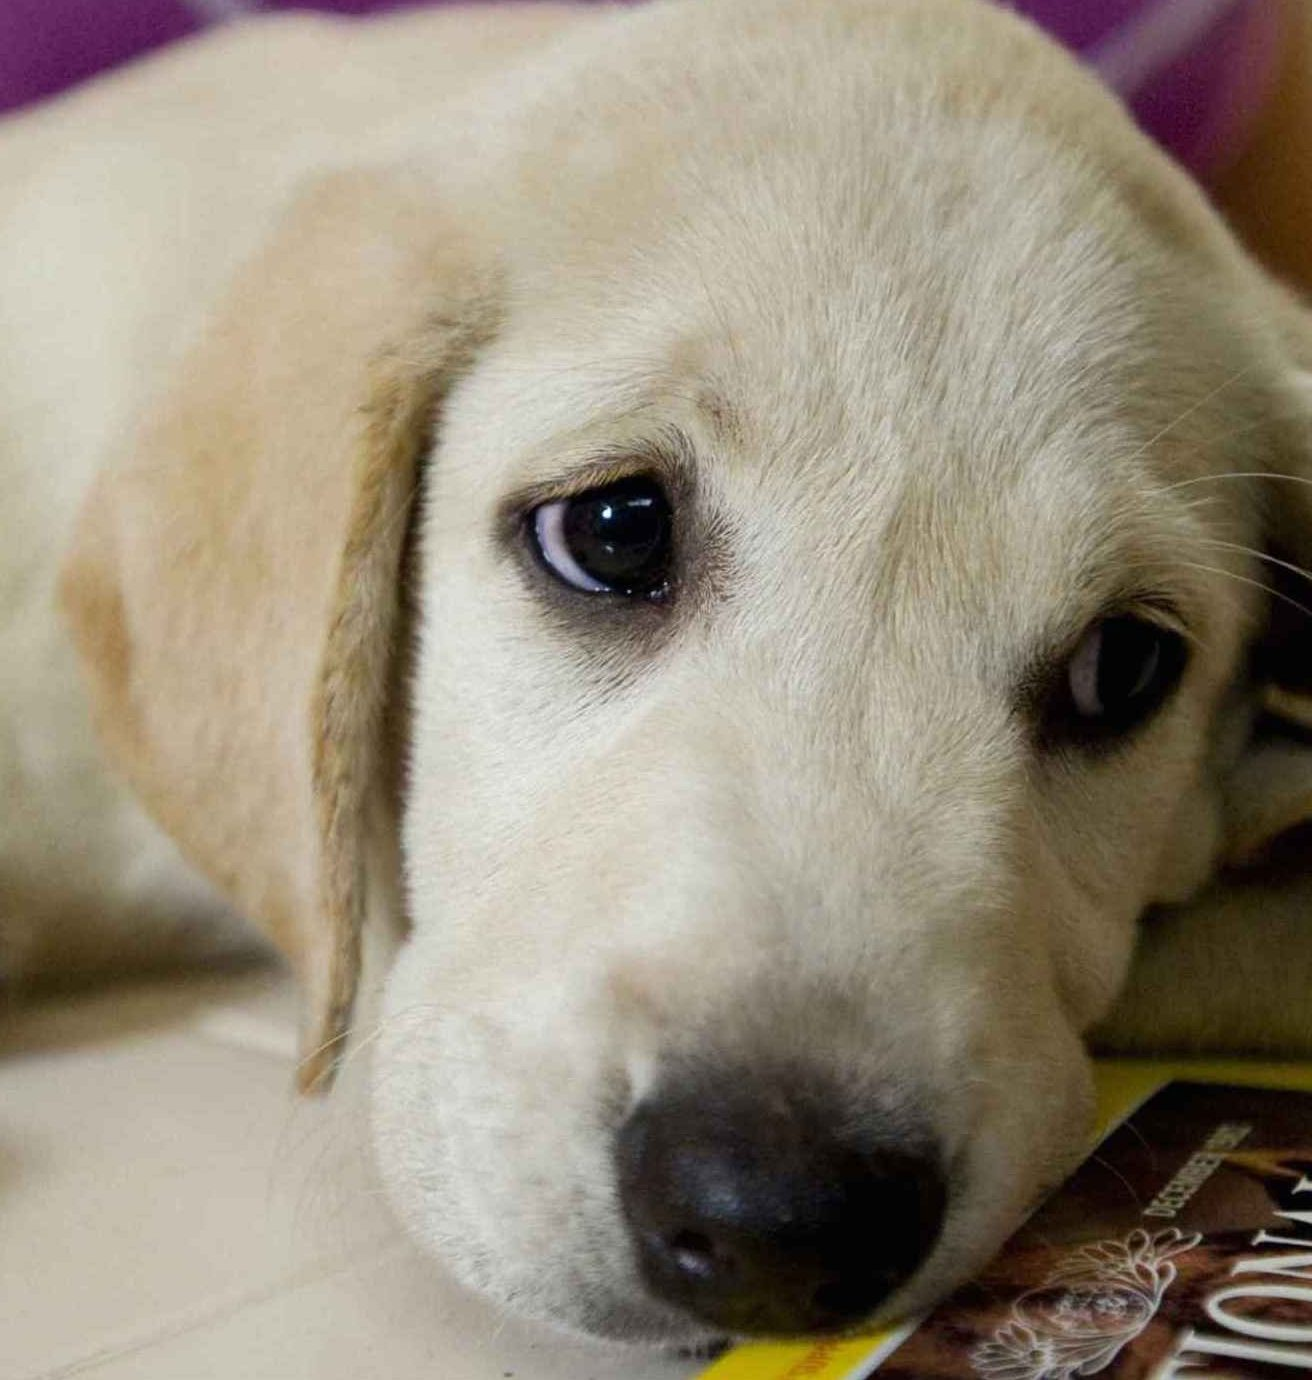 Marley and Me e1582802992325 20 Unbelievable Films You Didn't Know Were Actually Based On True Stories